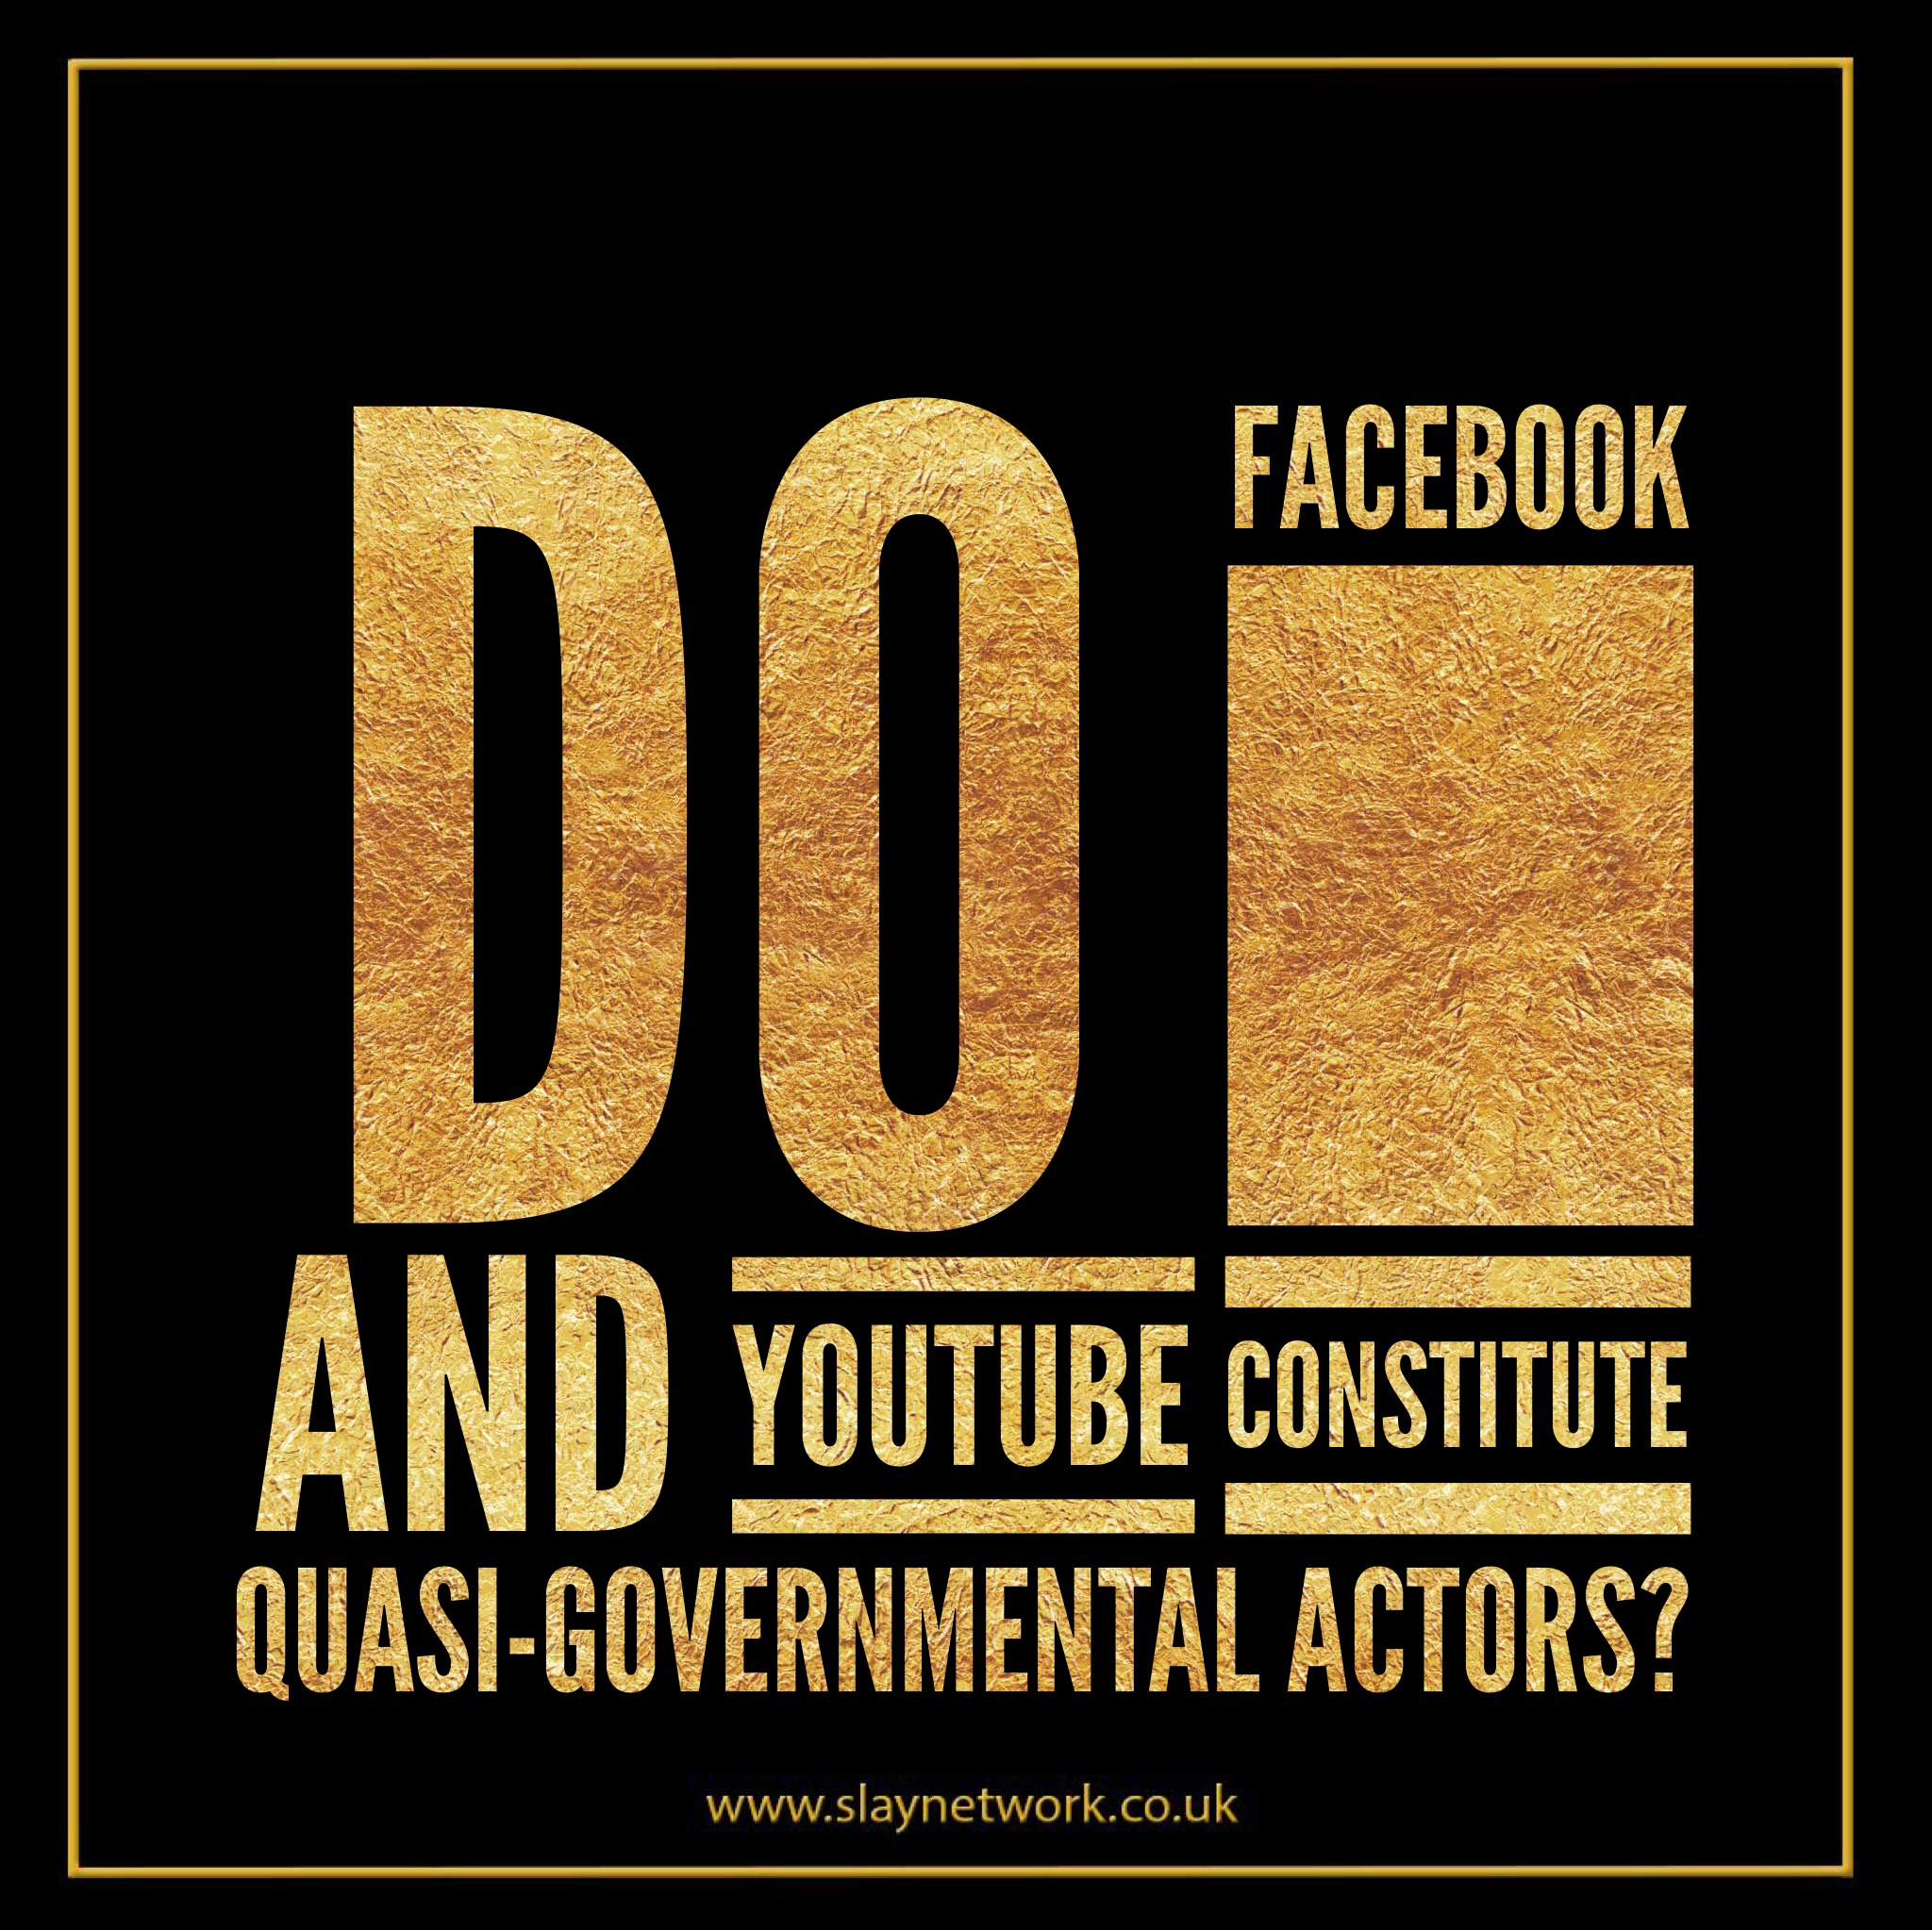 Are Governments meddling with Social Media